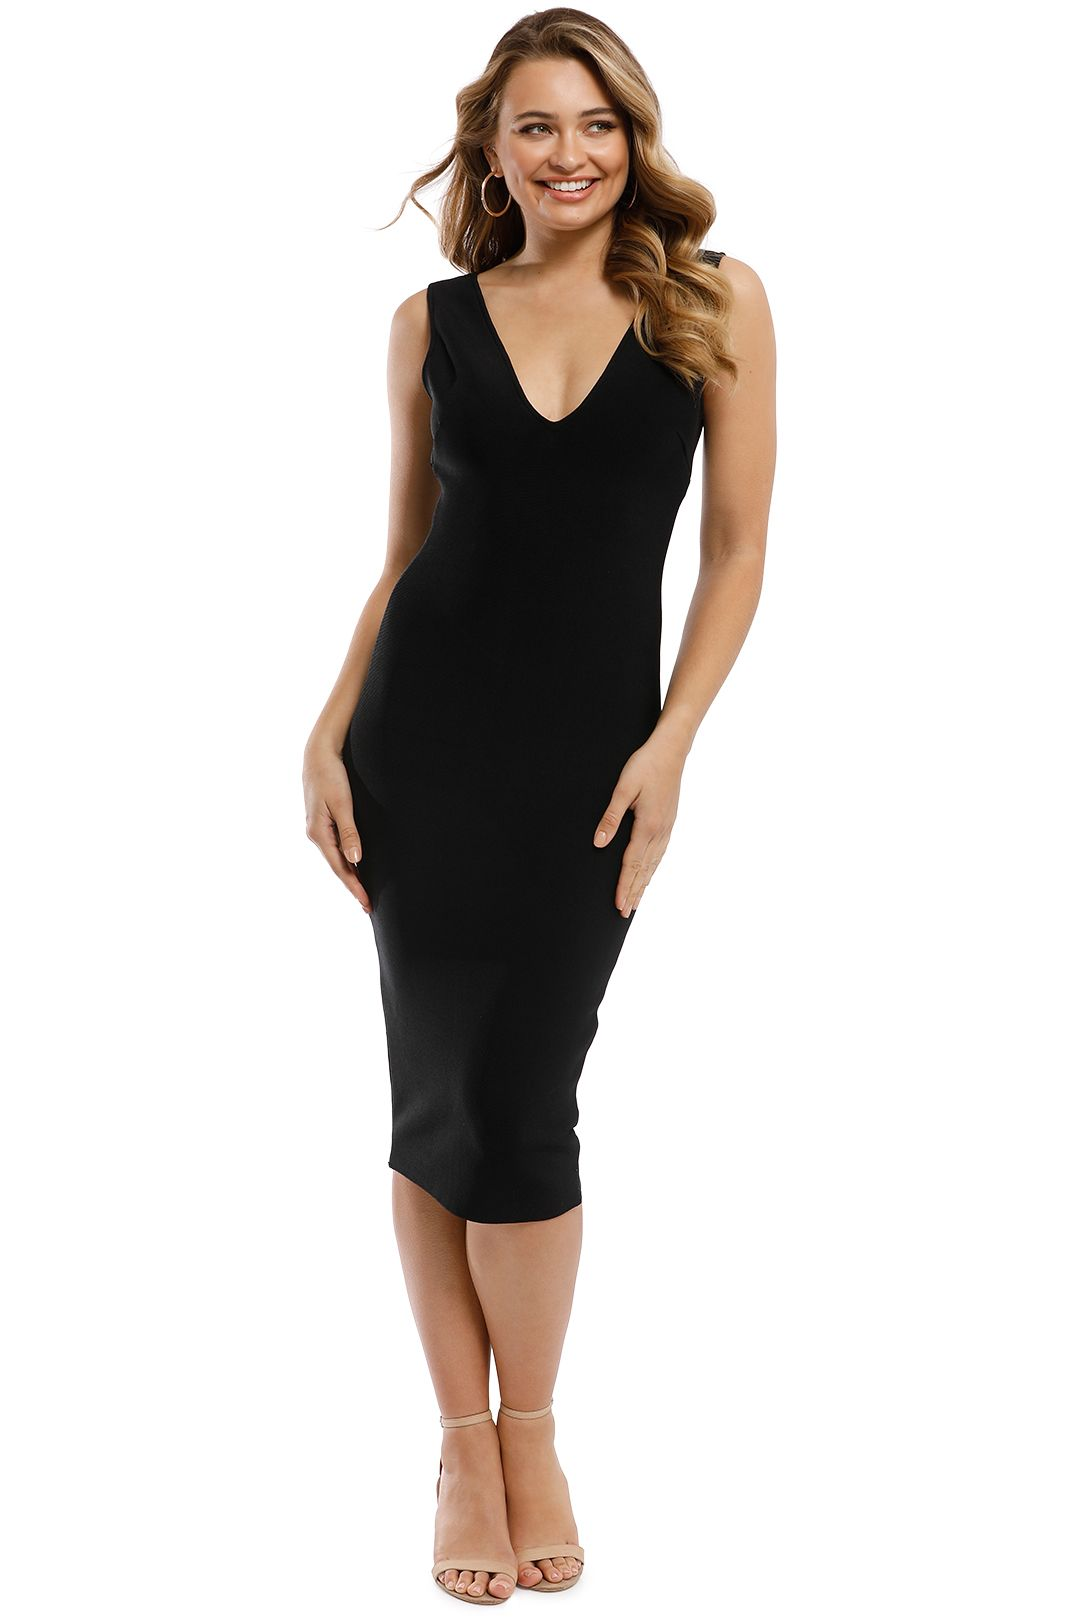 Misha Collection - Solange Bandage Dress - Black - Front